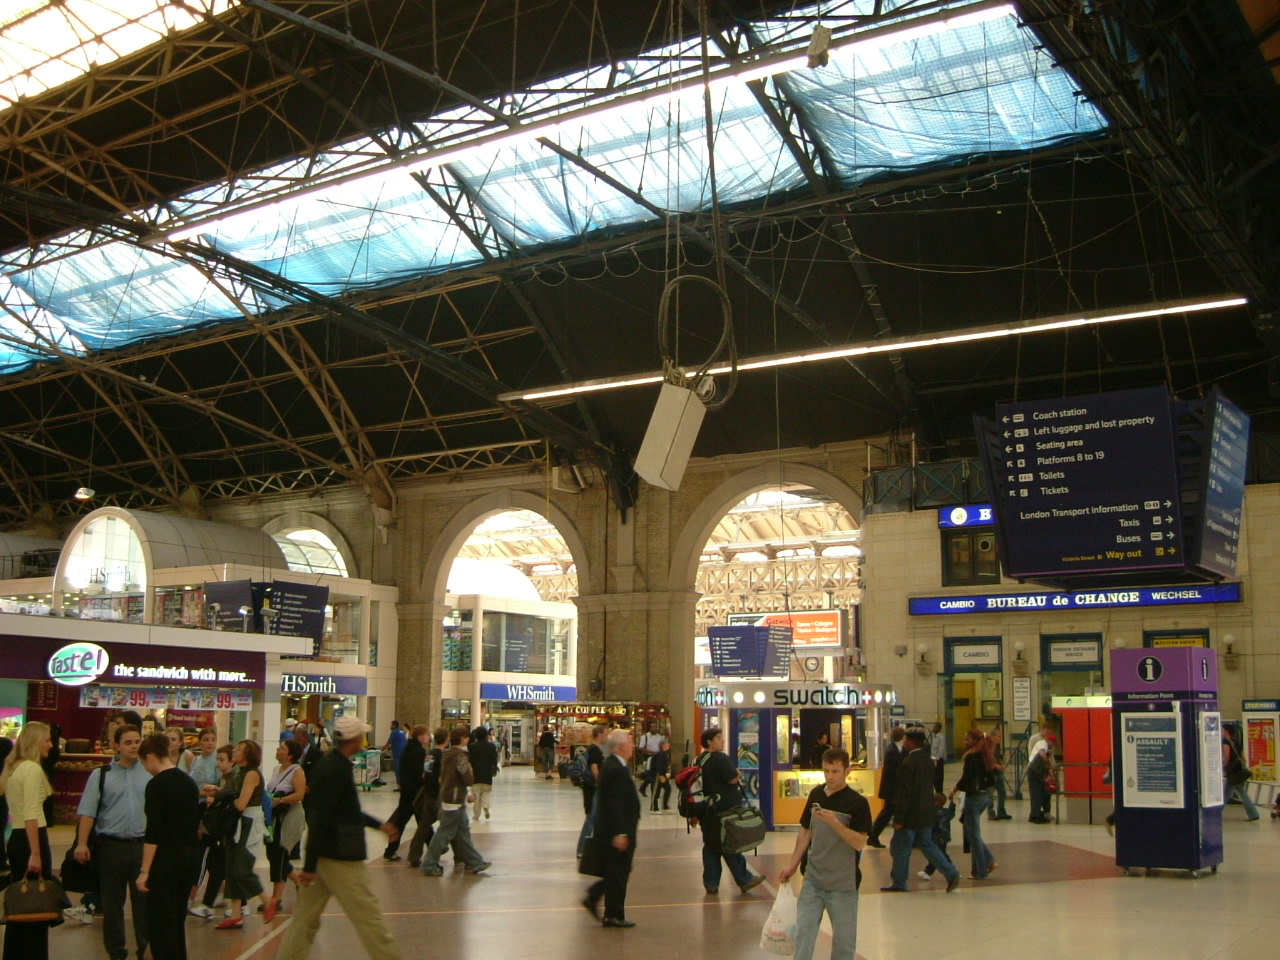 File:Victoria Station Concourse.jpg - Wikipedia, the free encyclopedia